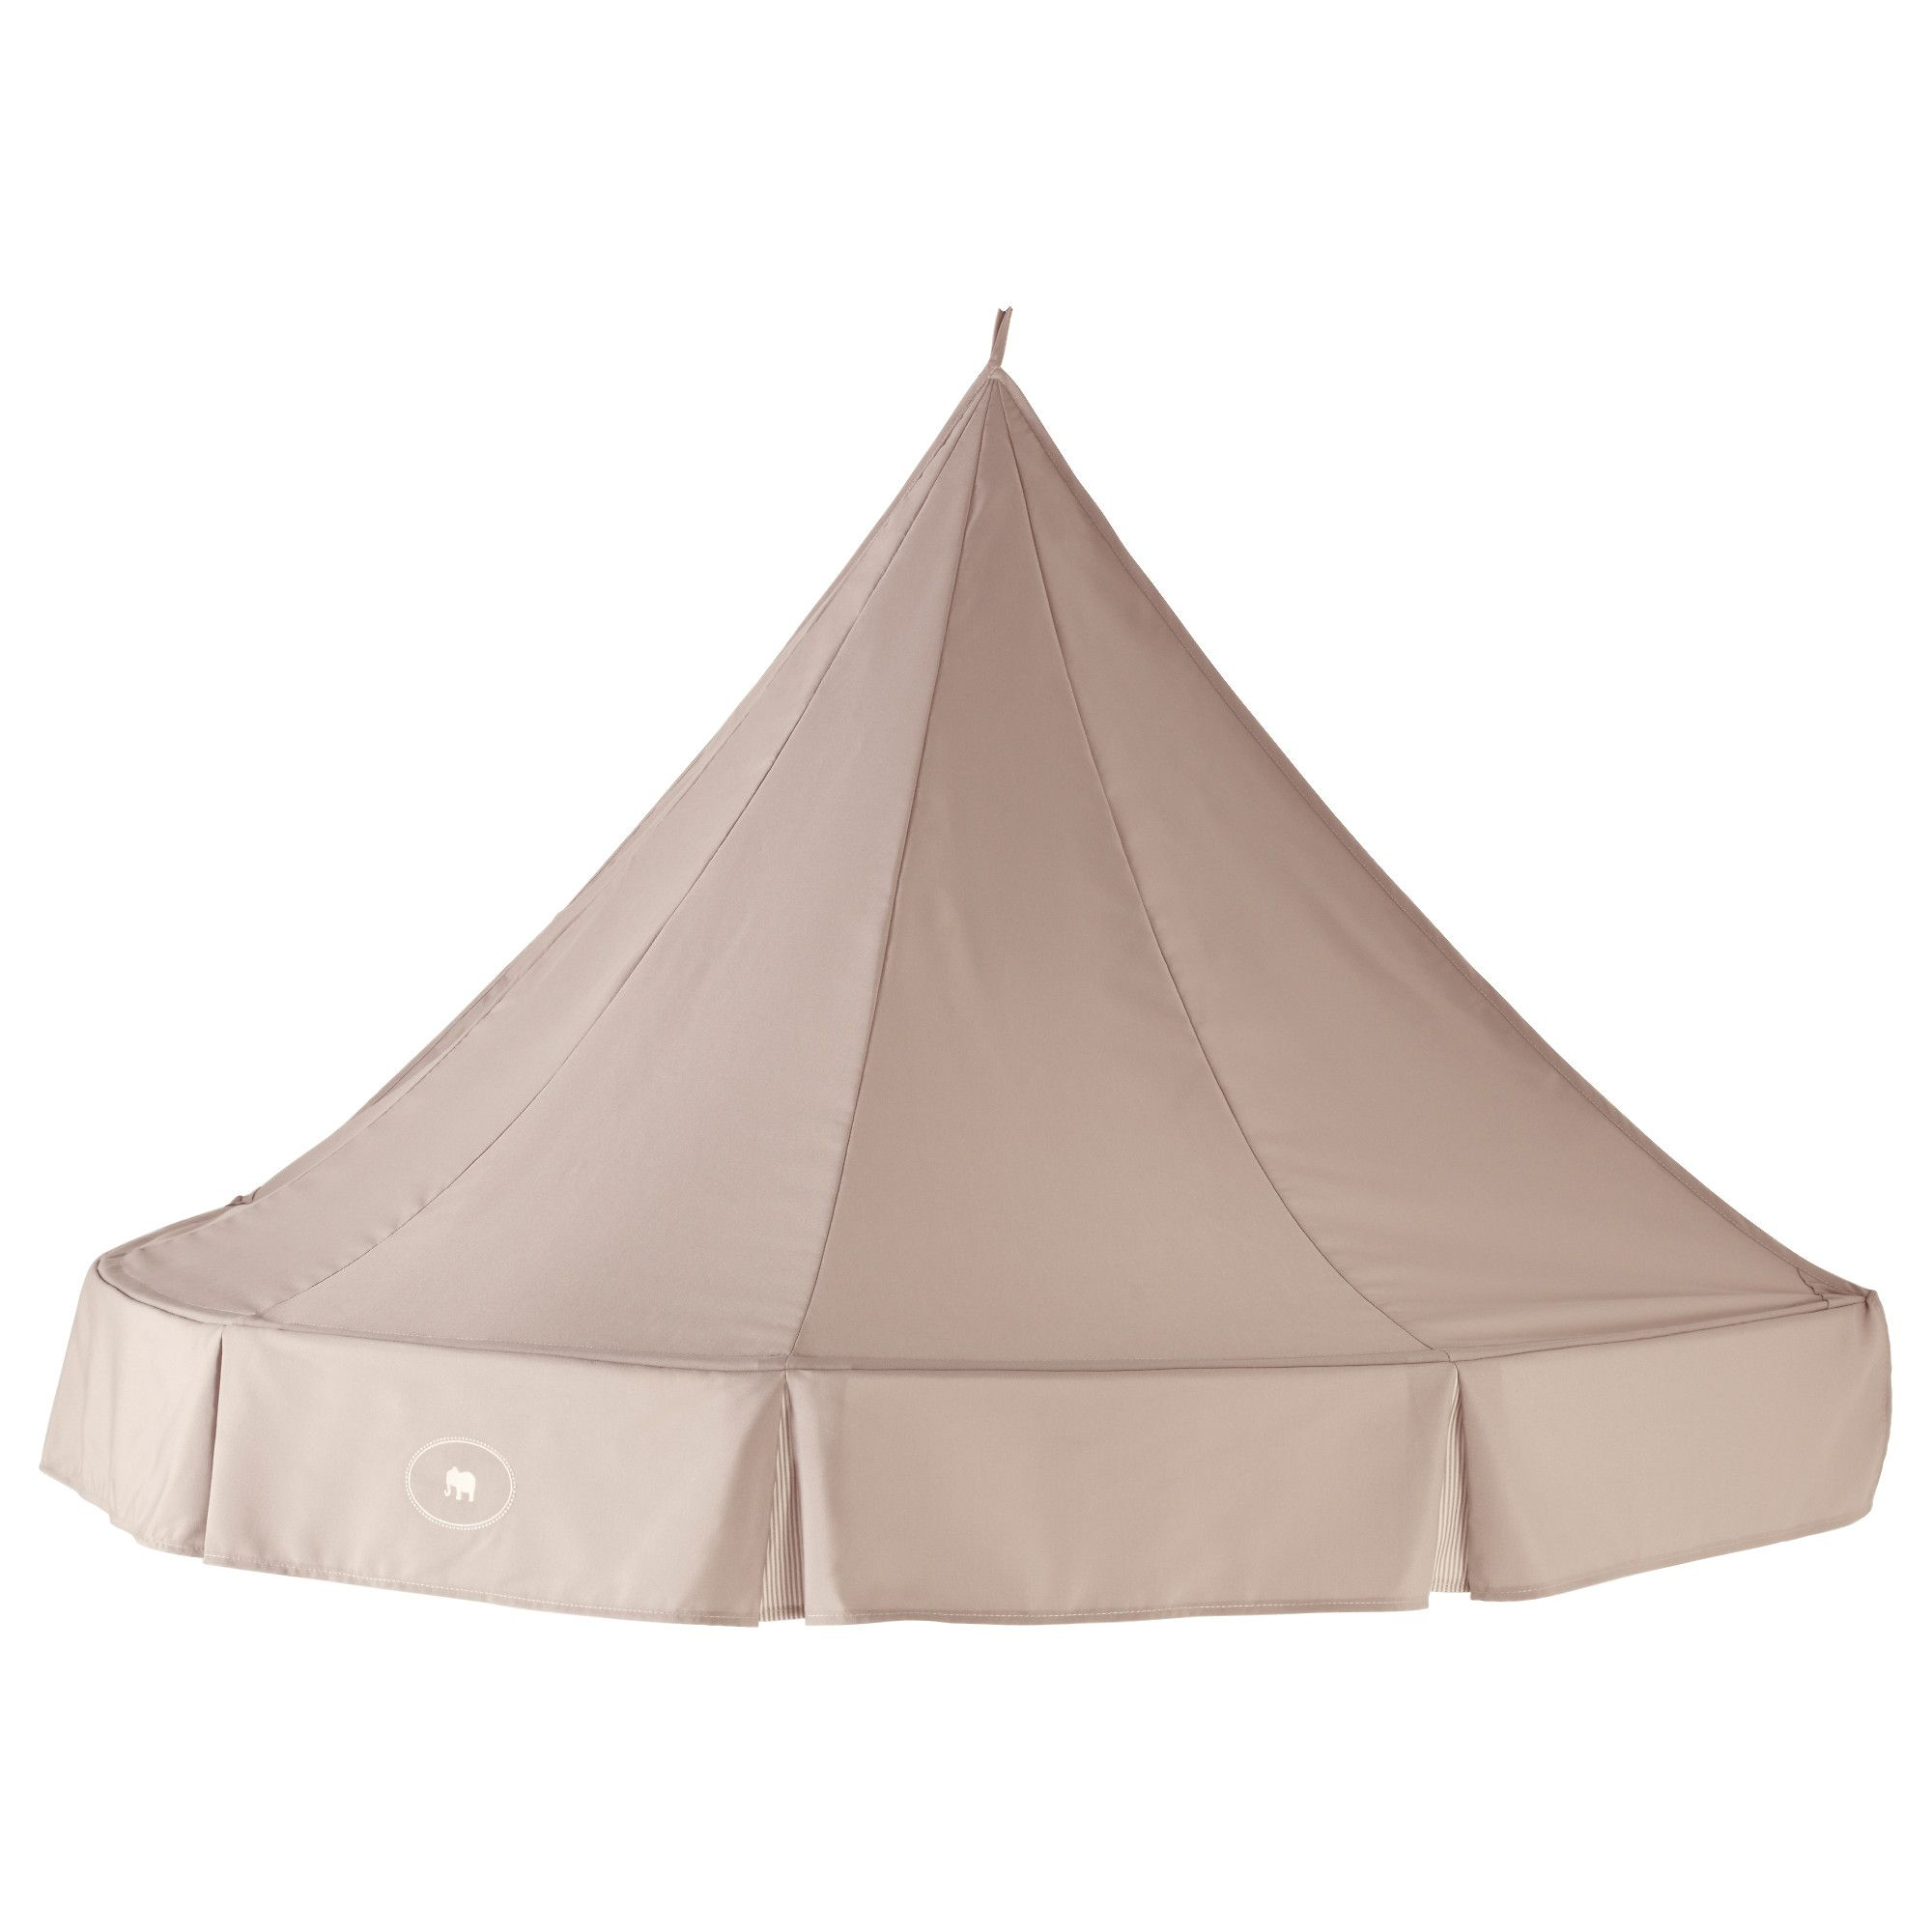 Australia Childrens bed tents, Bed tent, Ikea wardrobe